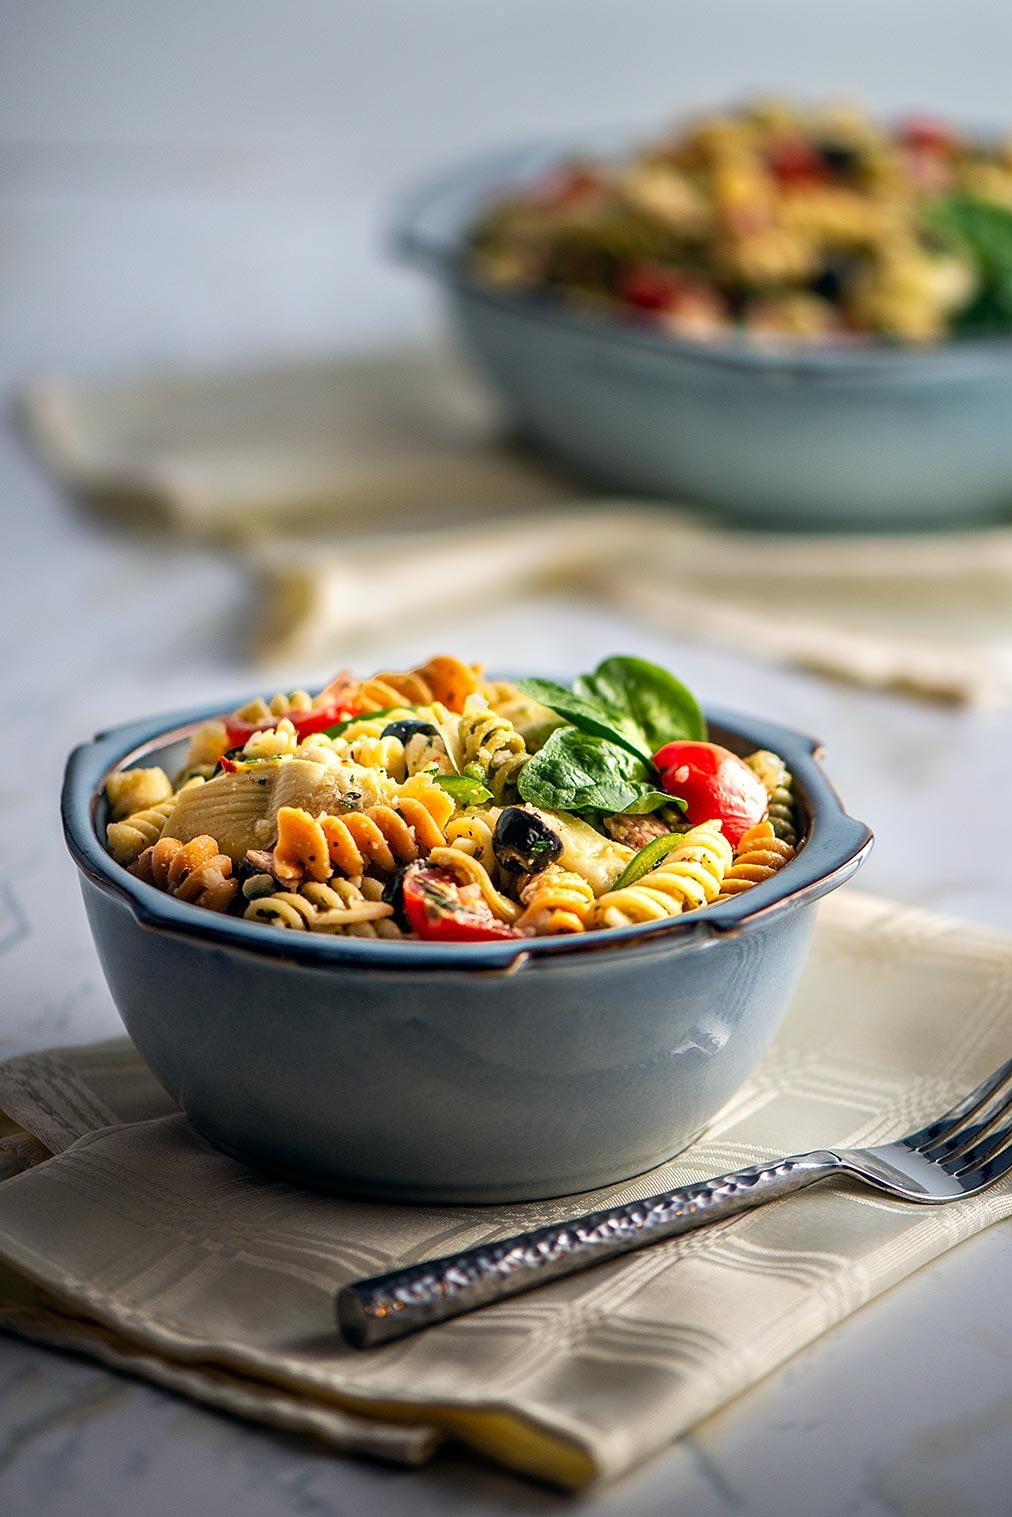 soup bowl of pasta salad and in the background a large serving bowl of pasta salad